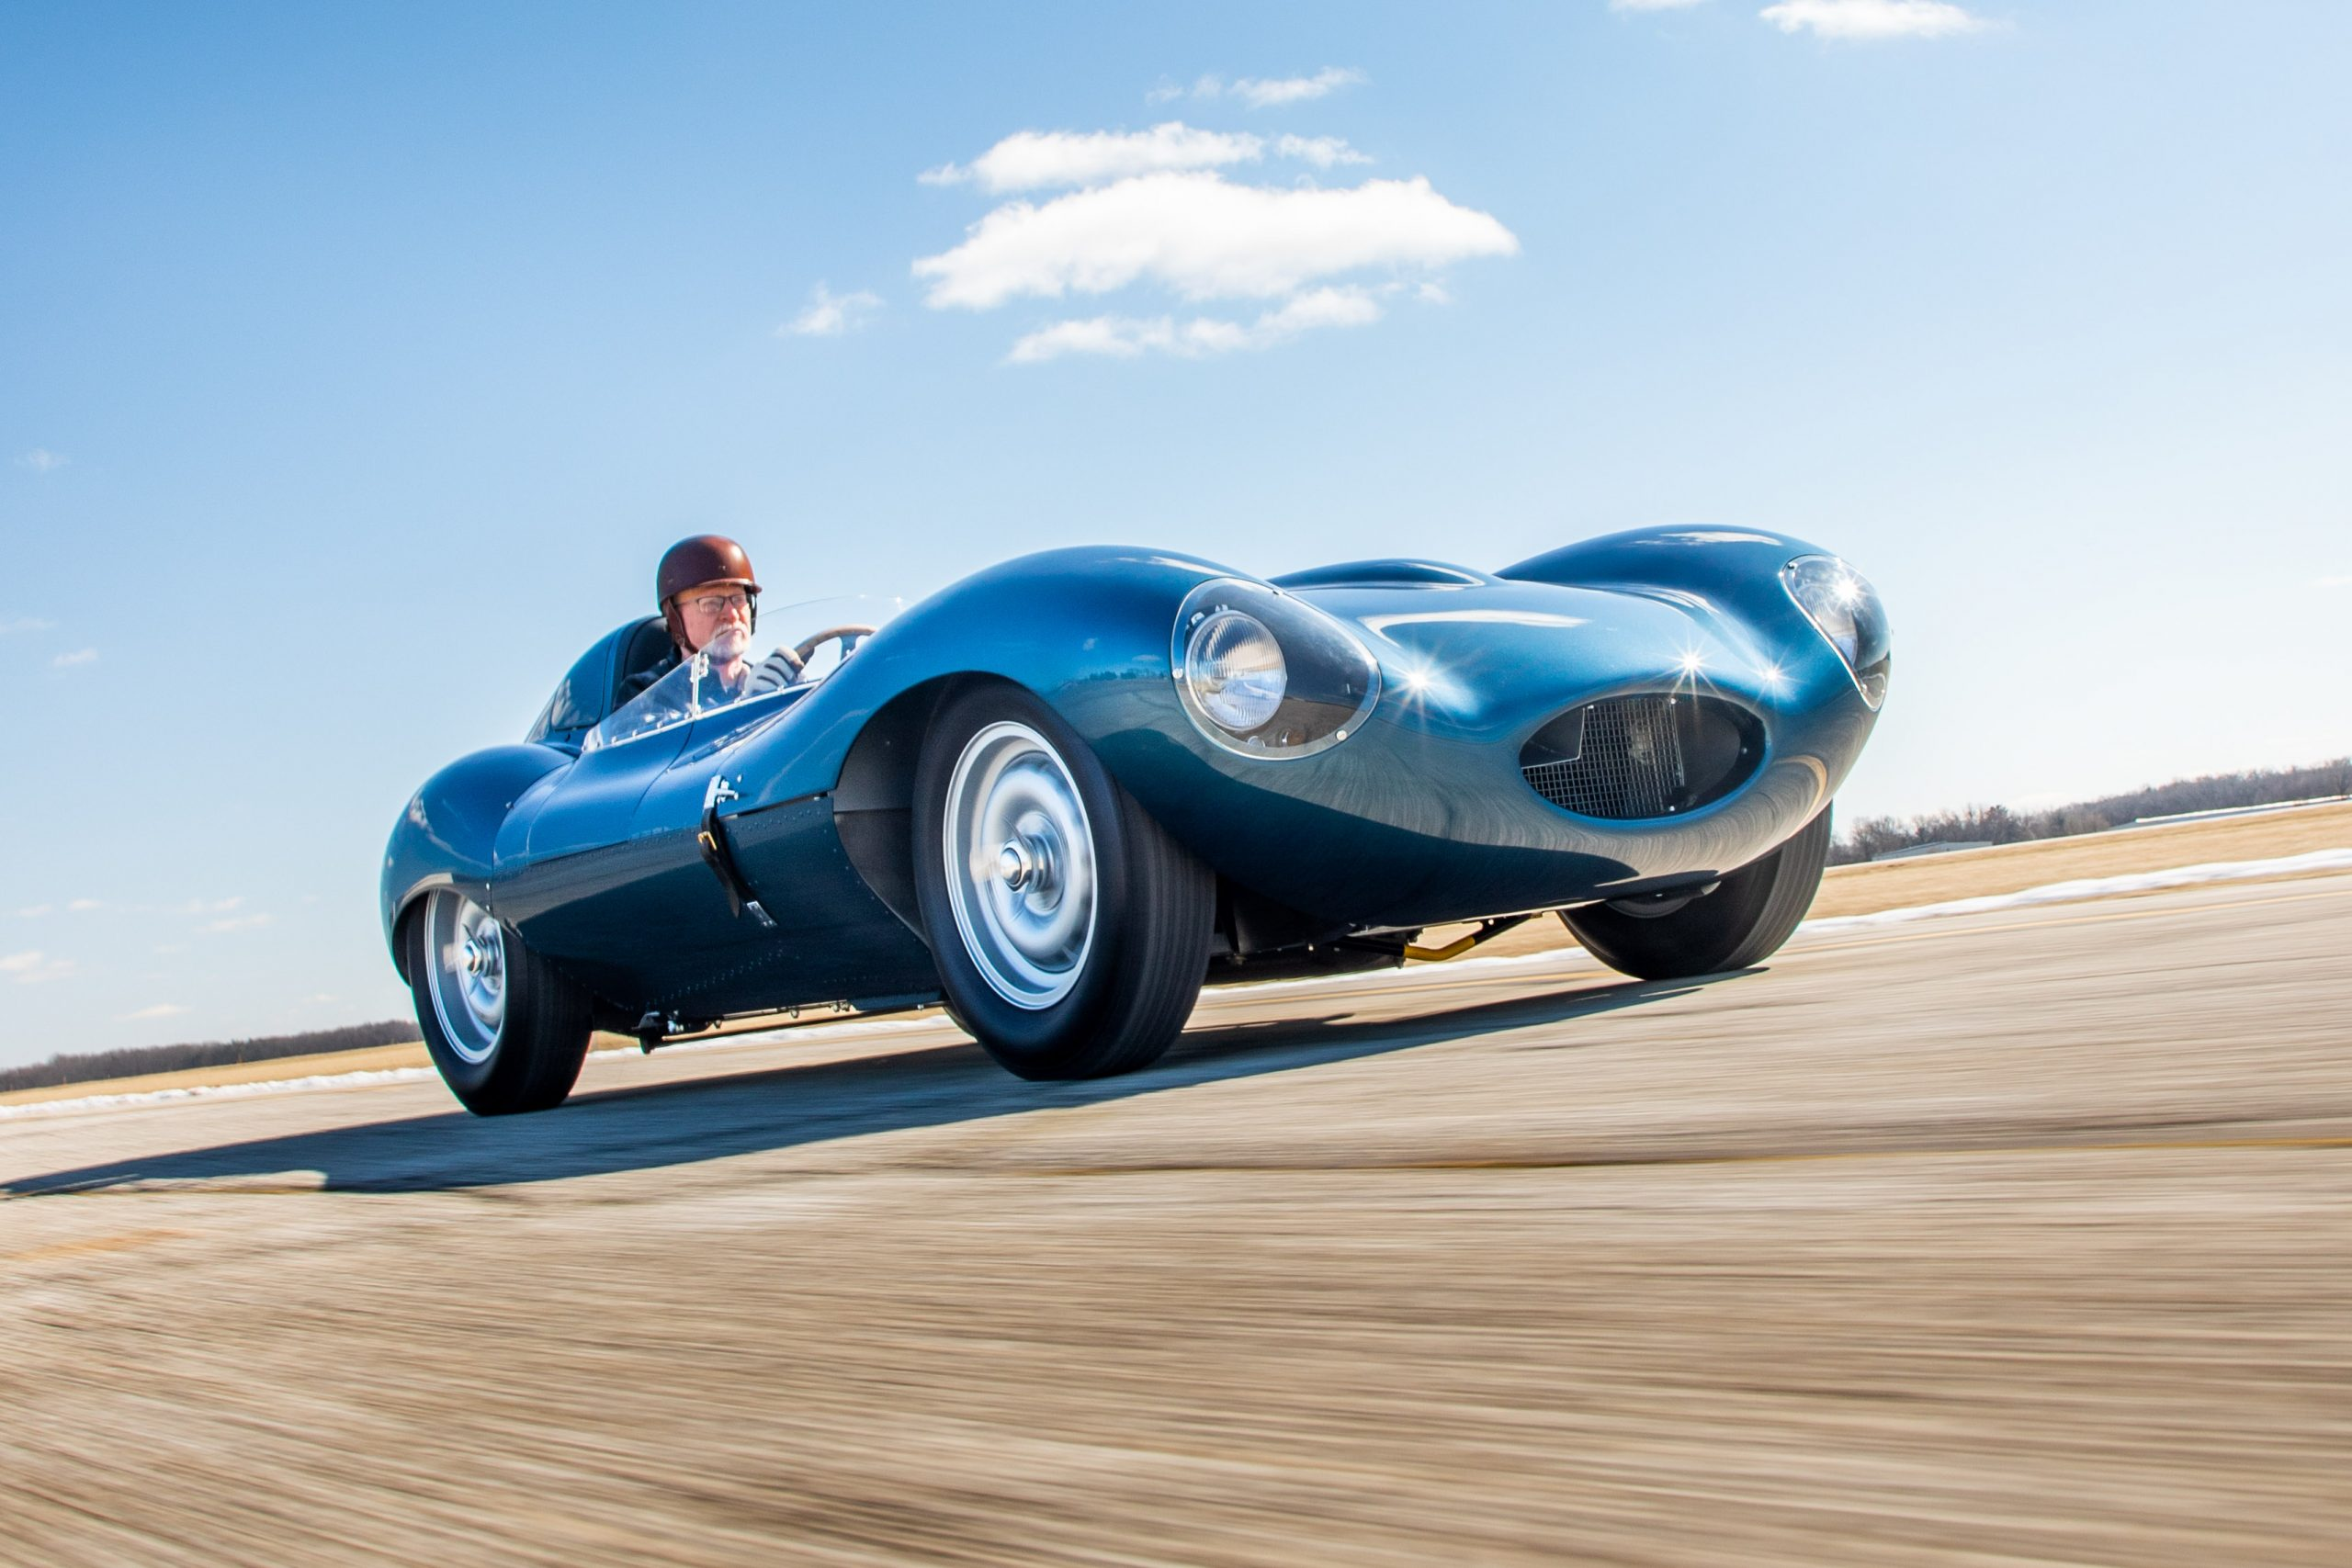 Valuing the rare Jaguar continuation cars